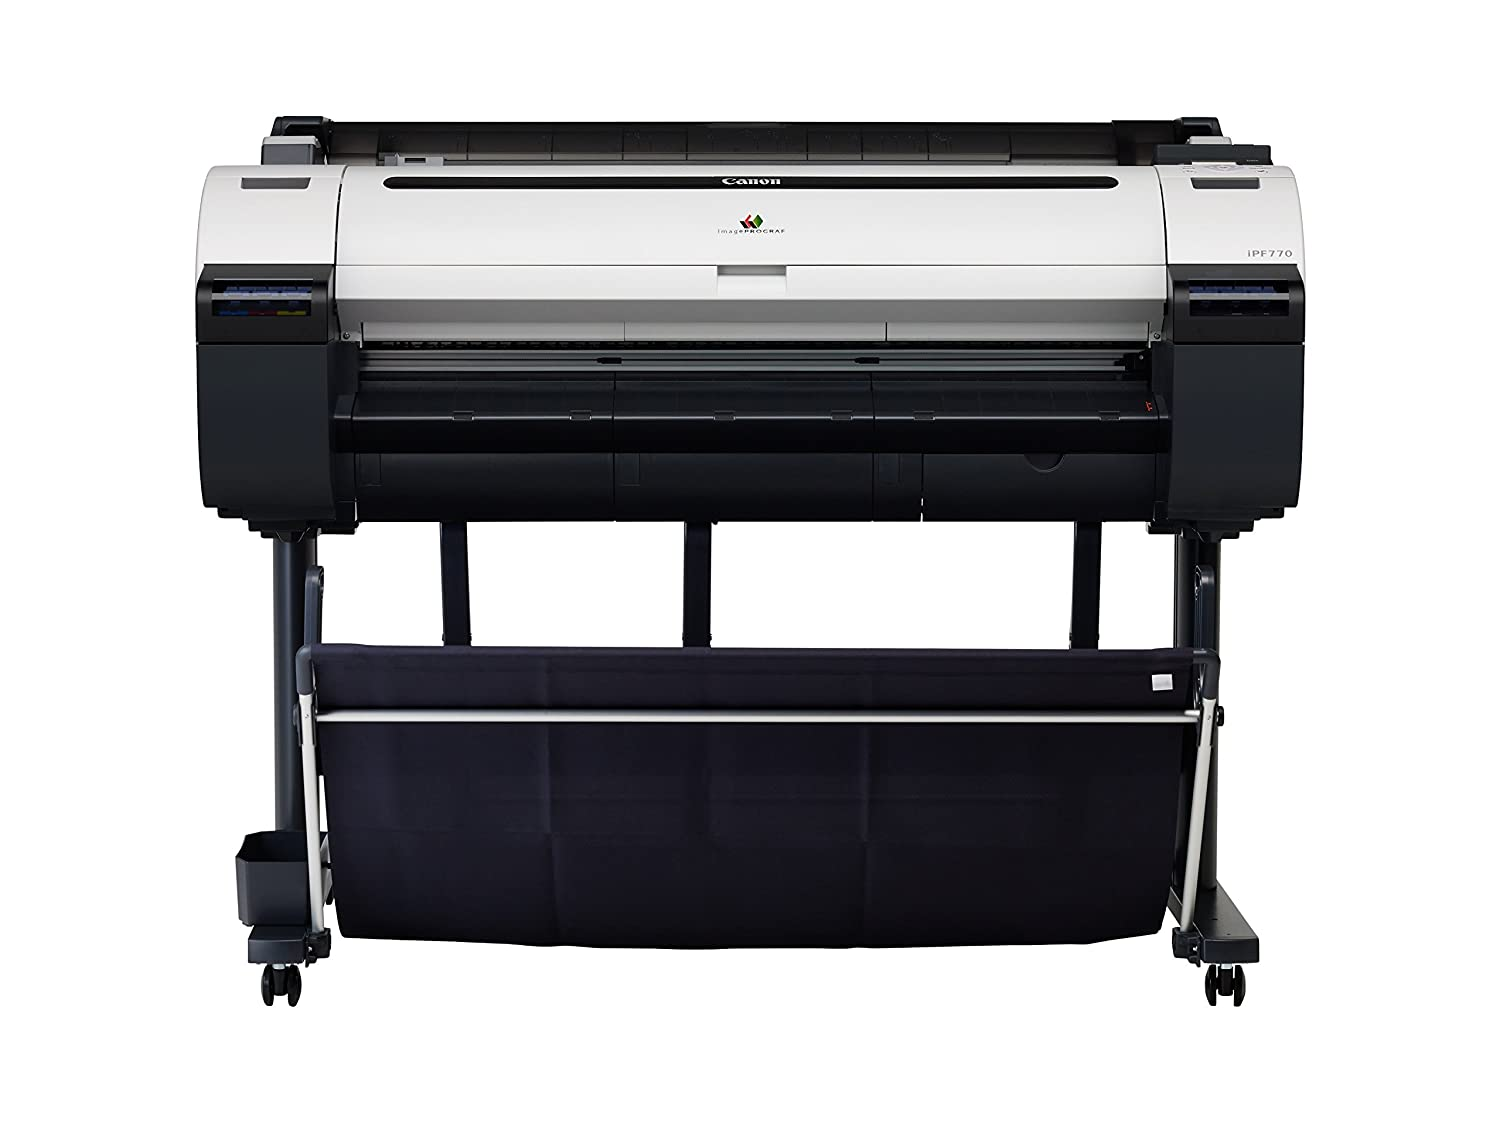 Amazon.com: Canon imagePROGRAF iPF770 Color Large Format ...